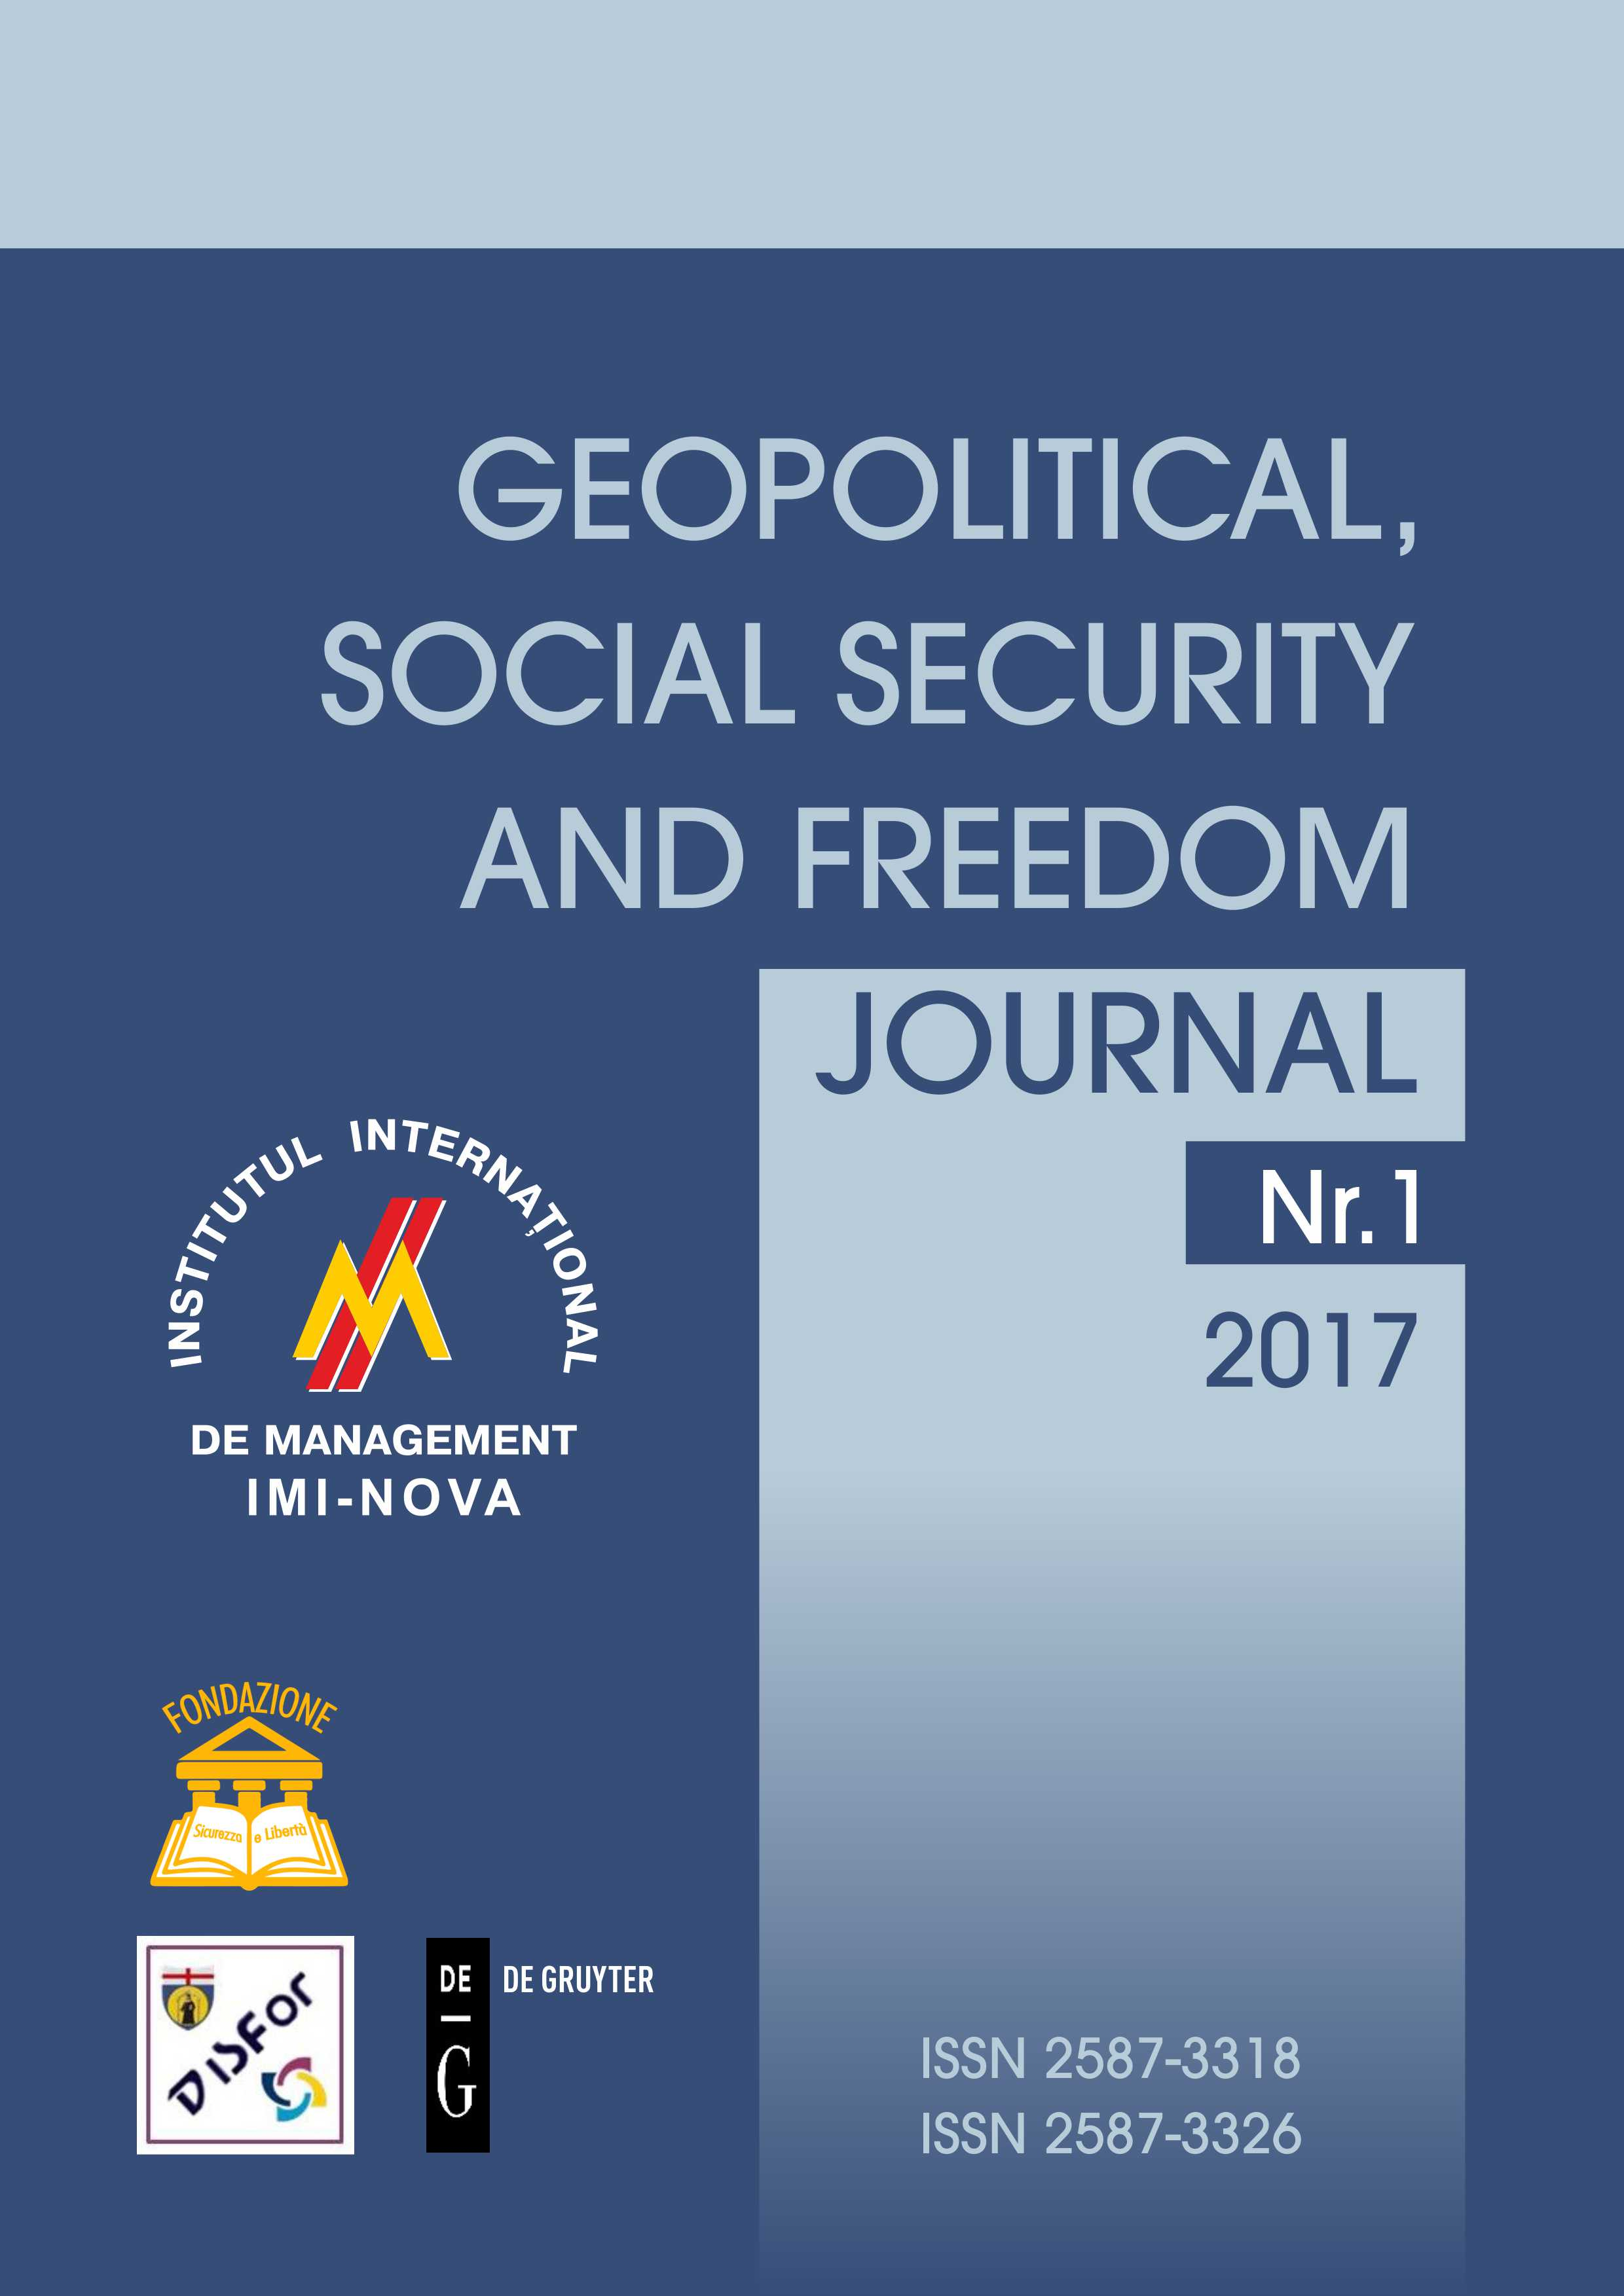 N.1 2017 – GEOPOLITICAL, SOCIAL SECURITY AND FREEDOM JOURNAL